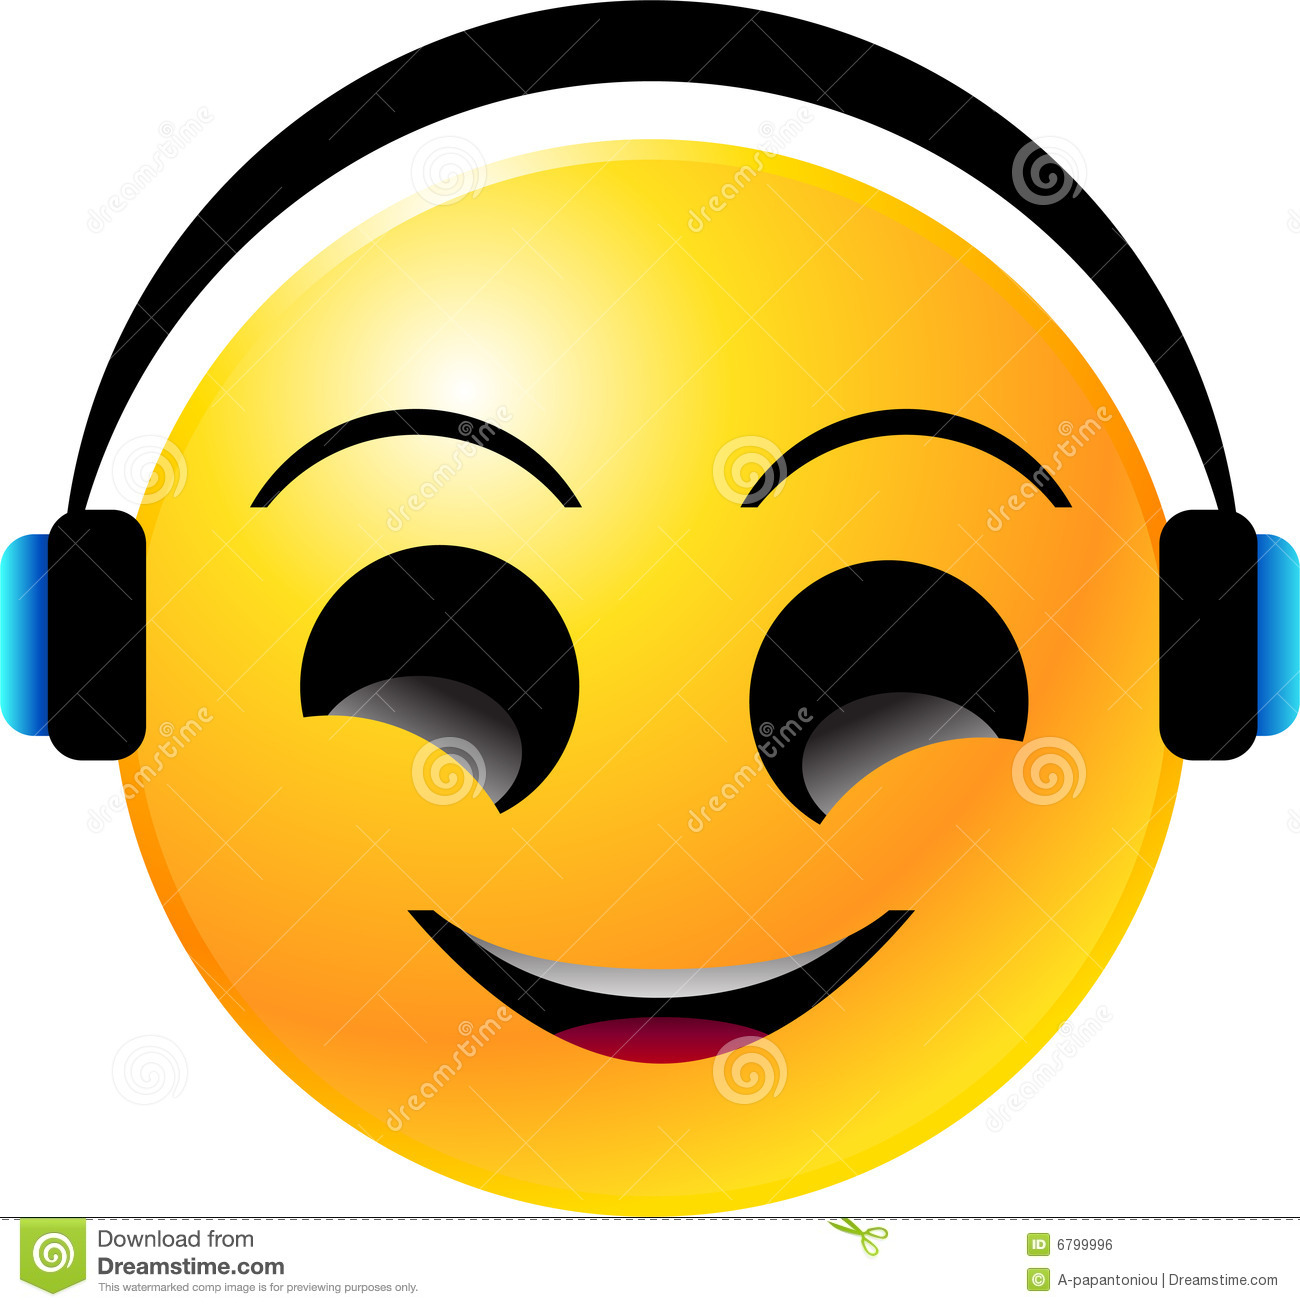 Emoticon Smiley Face Royalty Free Stock Image - Image: 6799996